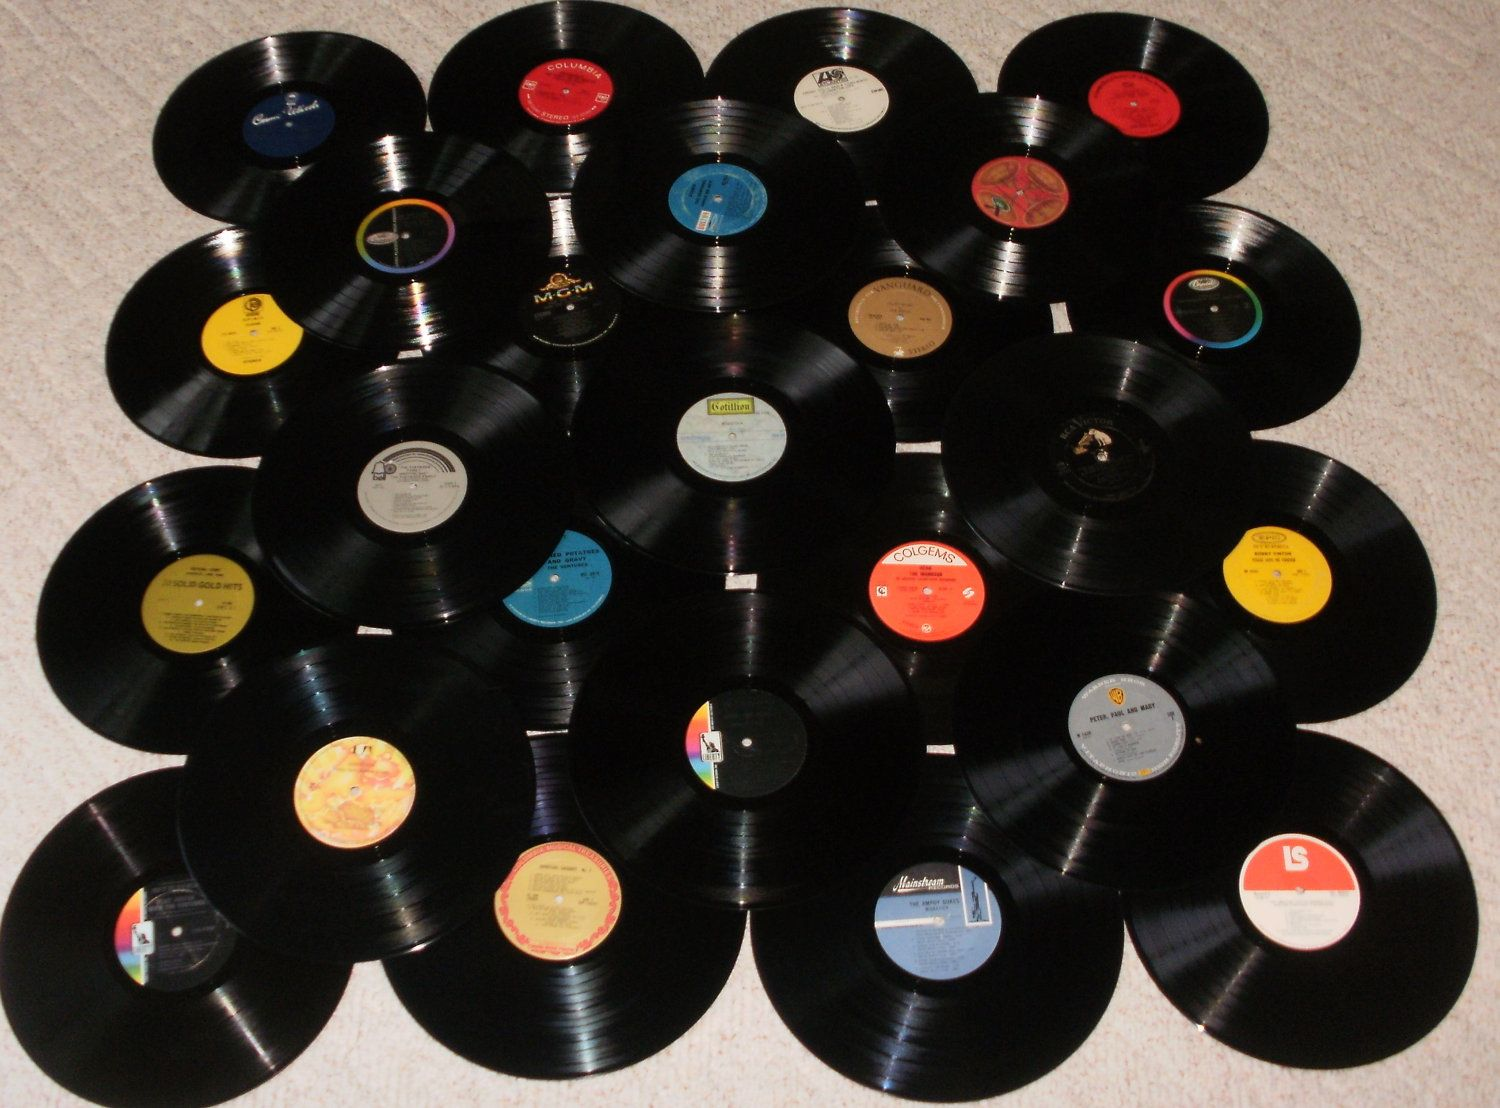 1960'S MUSIC -Lot of 25 Vinyl Record Albums for Decorating or Craft  Projects - 33 1/3 rpm